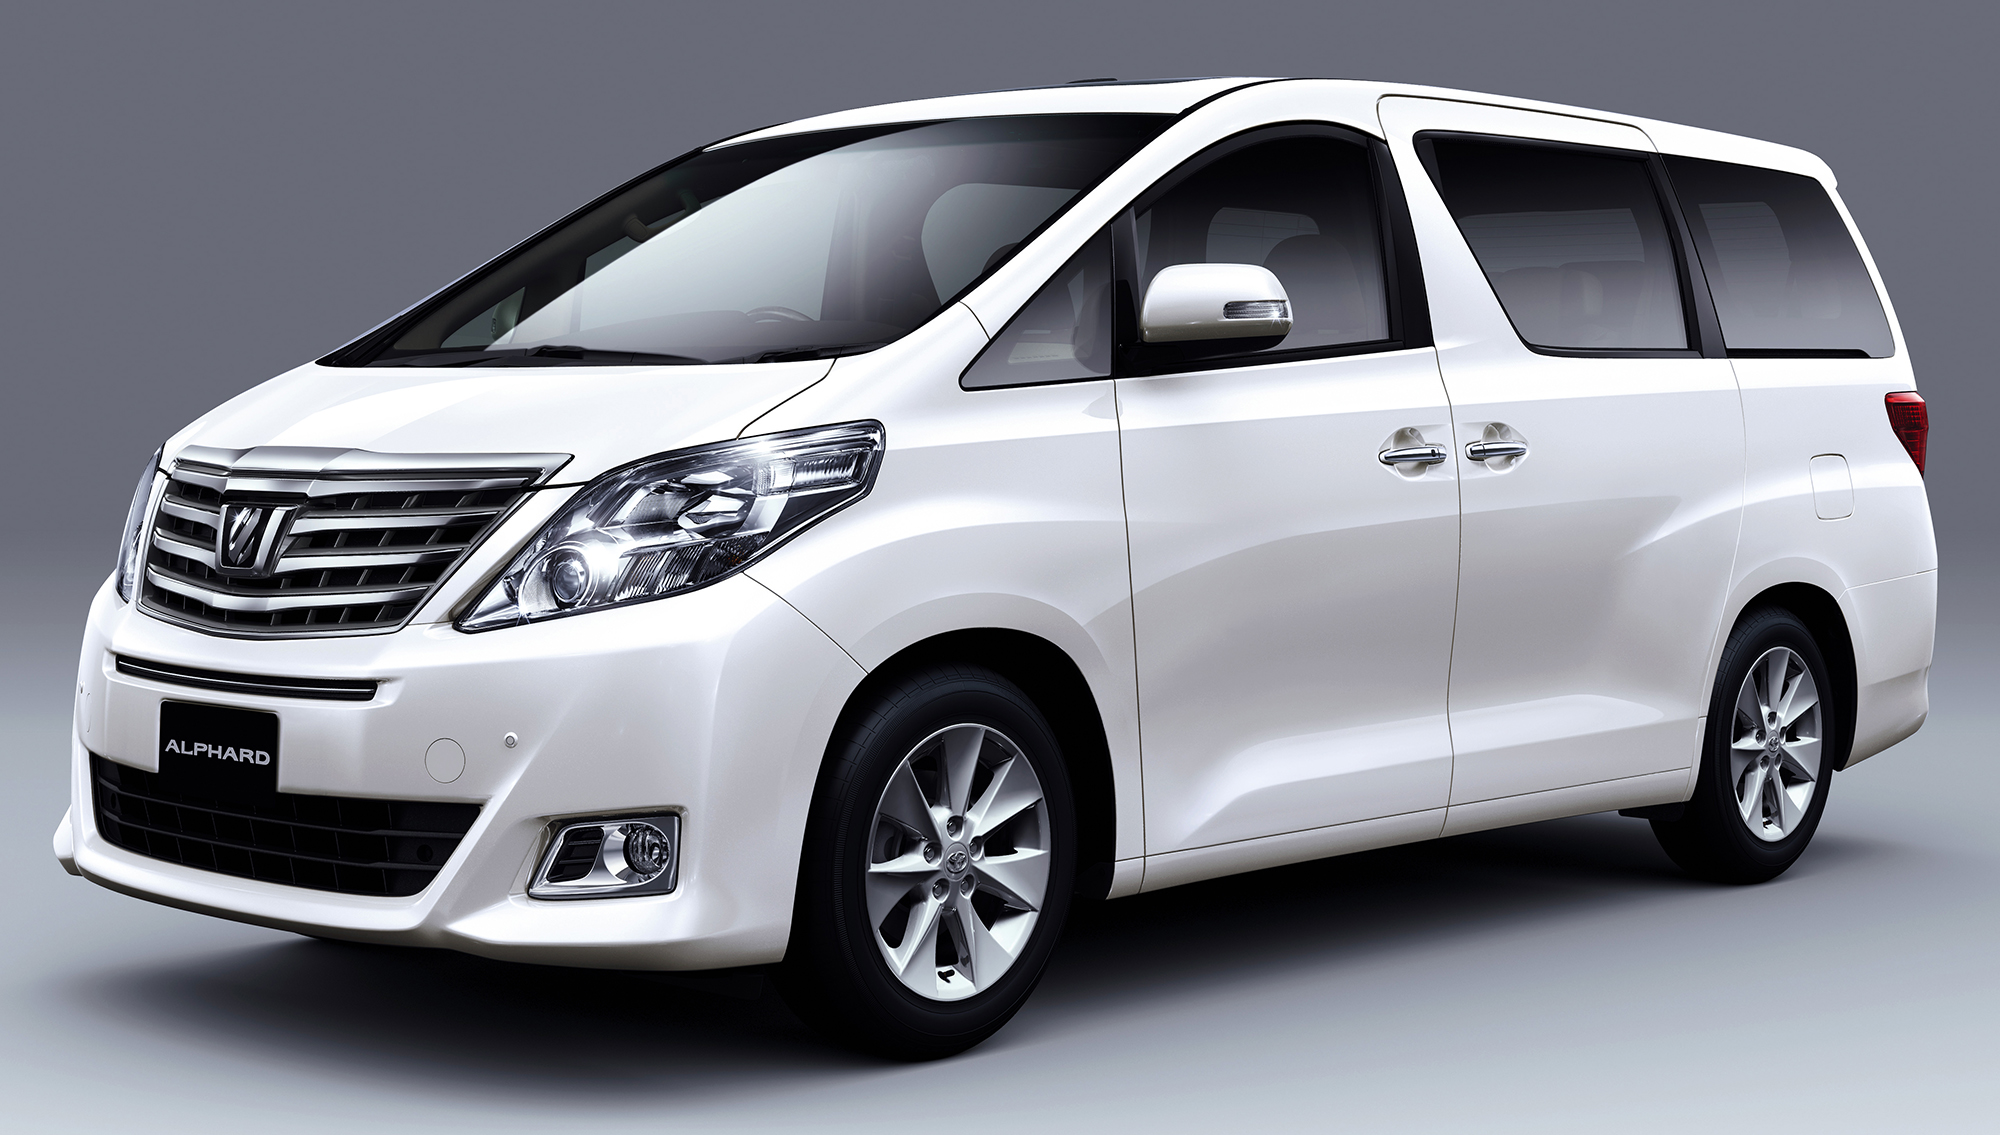 Toyota Alphard Prices Revealed Rm338k 398k Image 239082